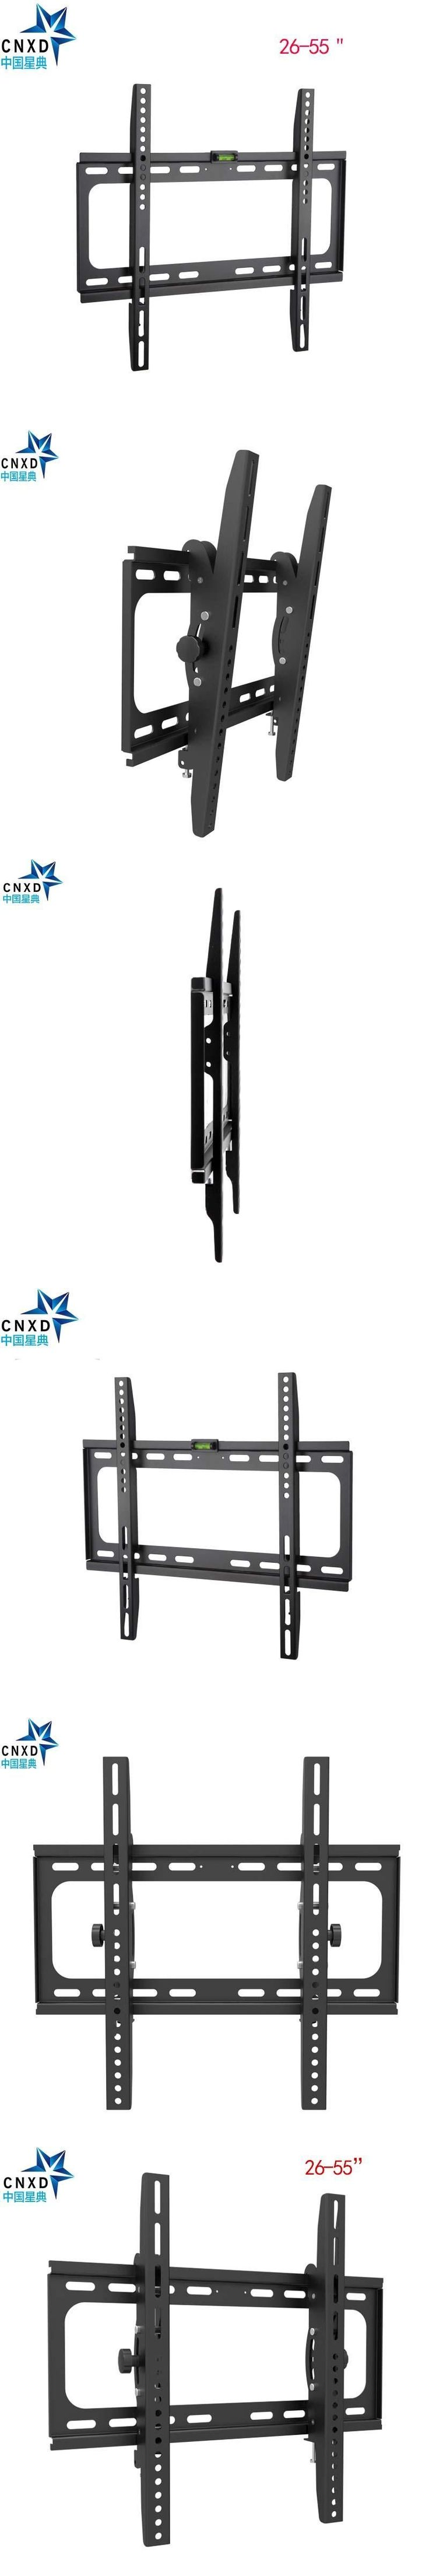 Articulating Tilting 15 degree TV Wall Mount Bracket for26-55 Inch LED LCD Plasma TV VESA 400 x 400mm 110lbs Loading Capacity